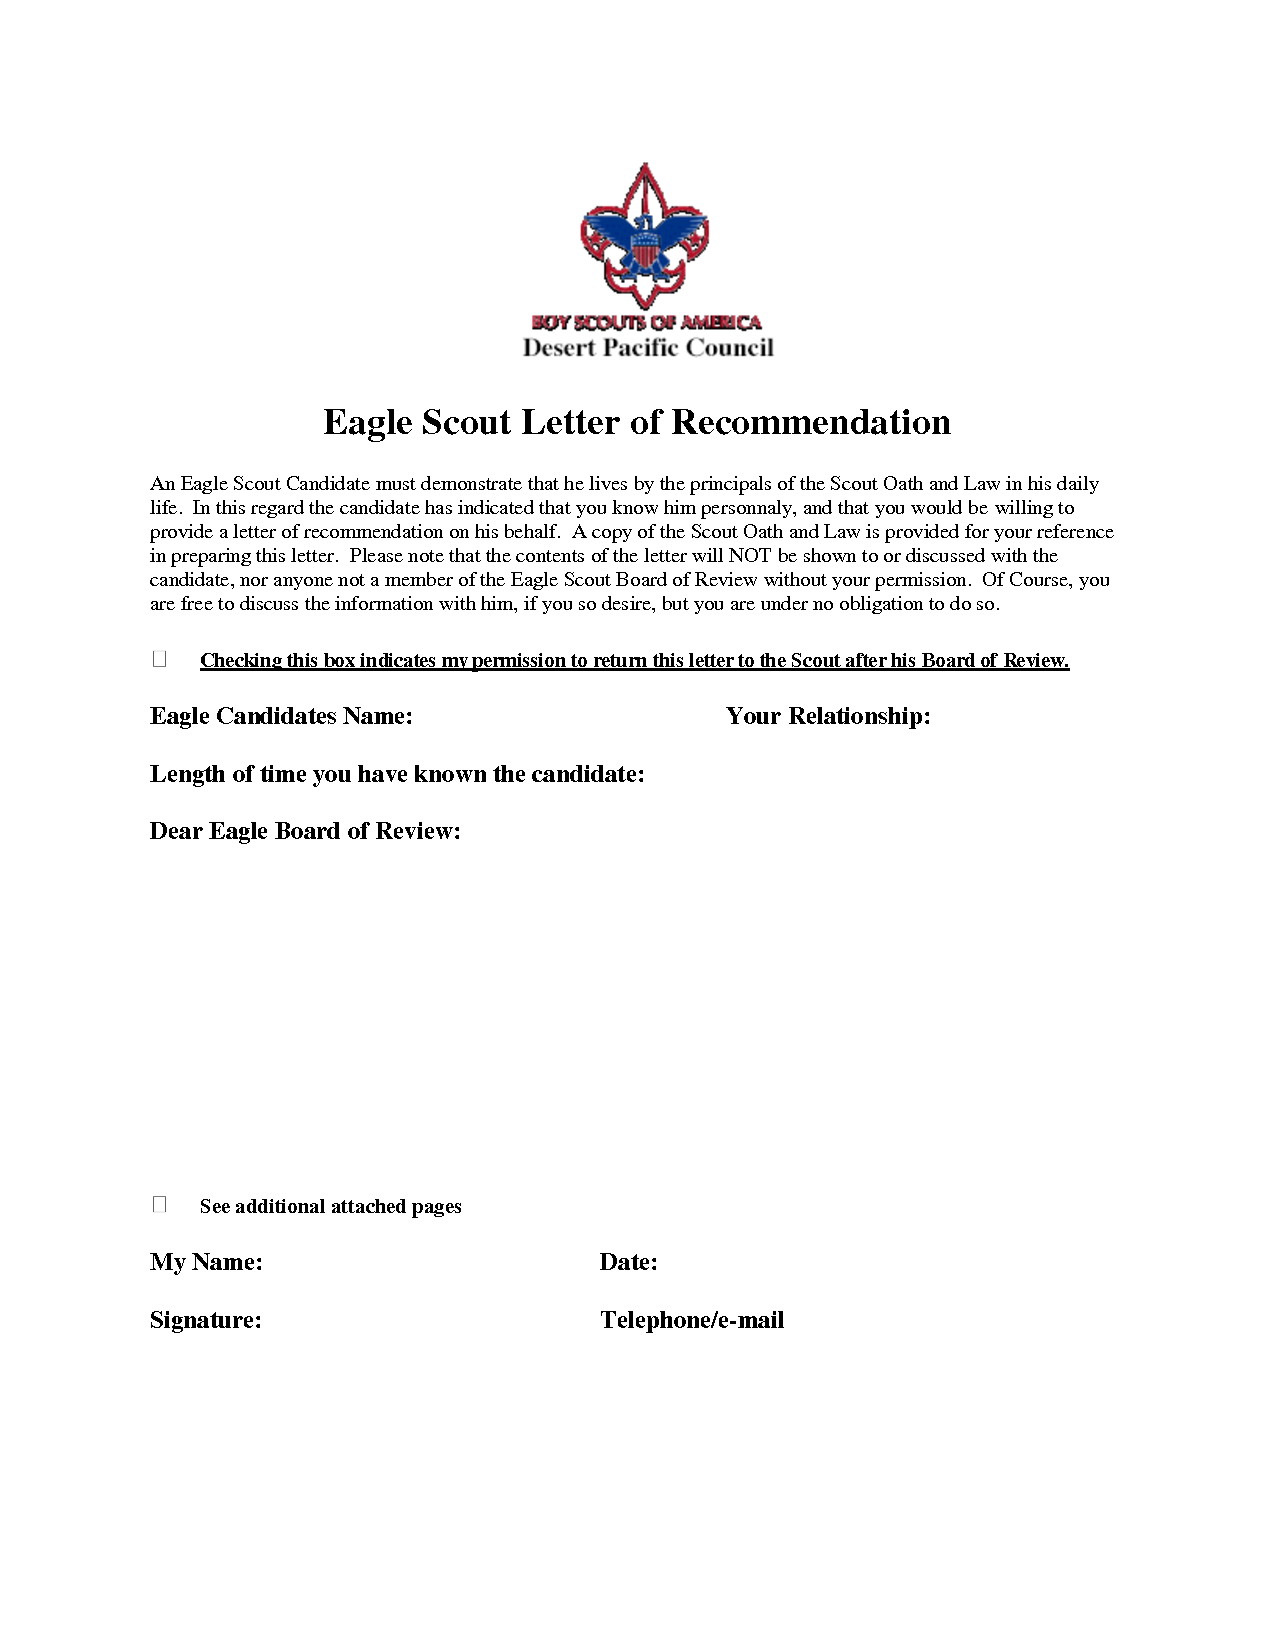 Eagle scout recommendation letter sample eagle scout letters of eagle scout recommendation letter sample eagle scout letters of recommendation template best template maxwellsz